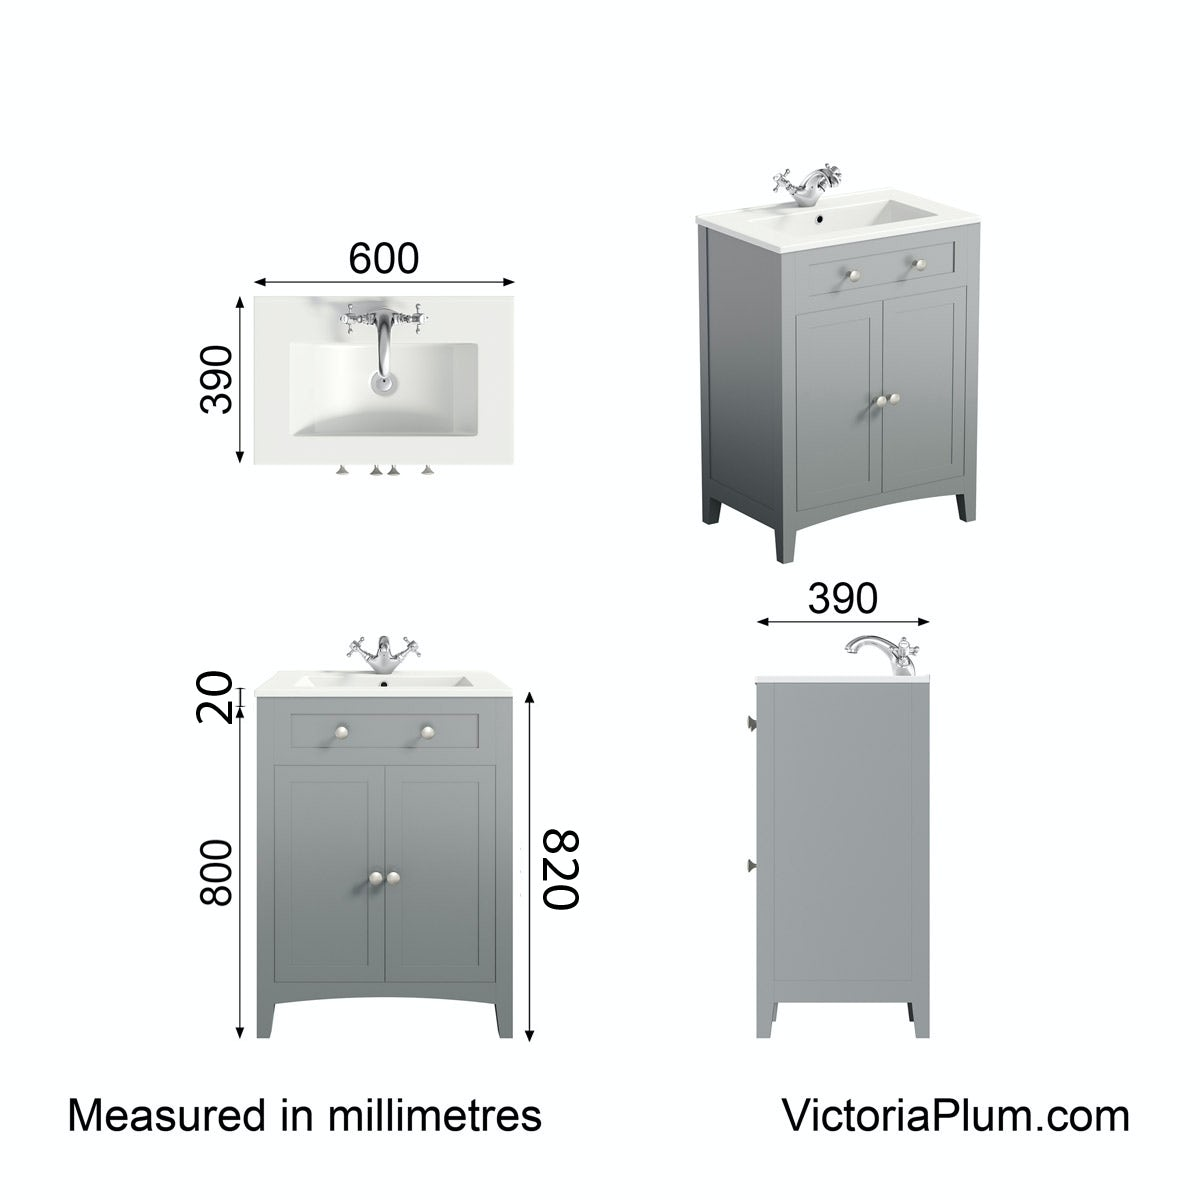 Dimensions for The Bath Co. Camberley satin grey vanity unit with basin 600mm